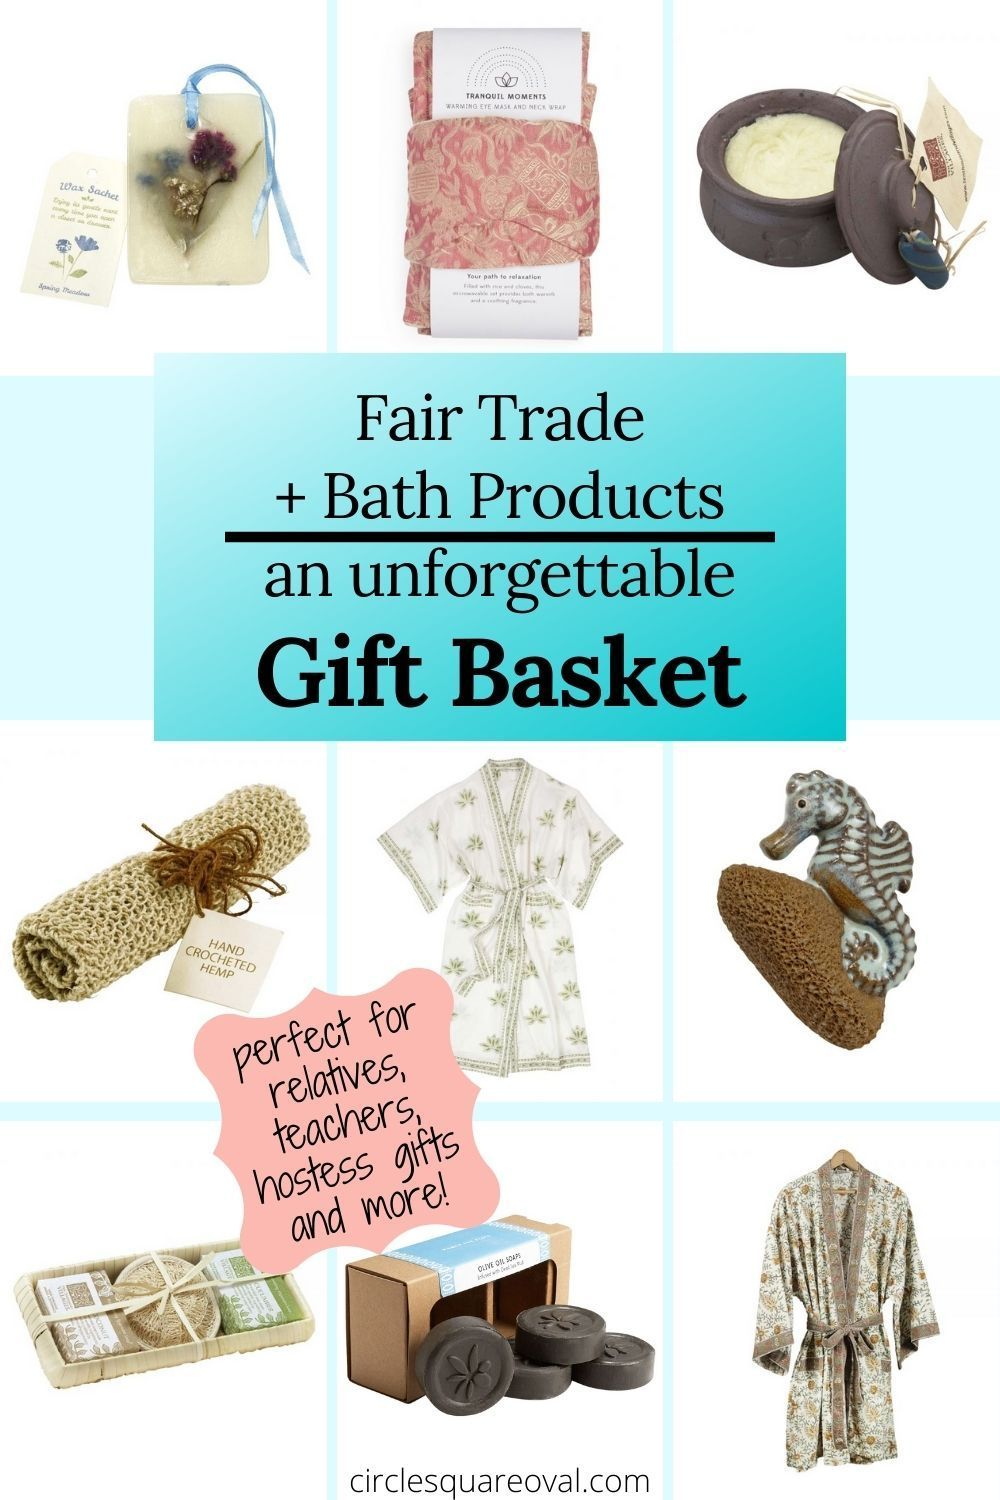 Gift Guide Fair Trade Bath Products Circlesquareoval Teacher Gift Baskets Gift Guide Unforgettable Gift